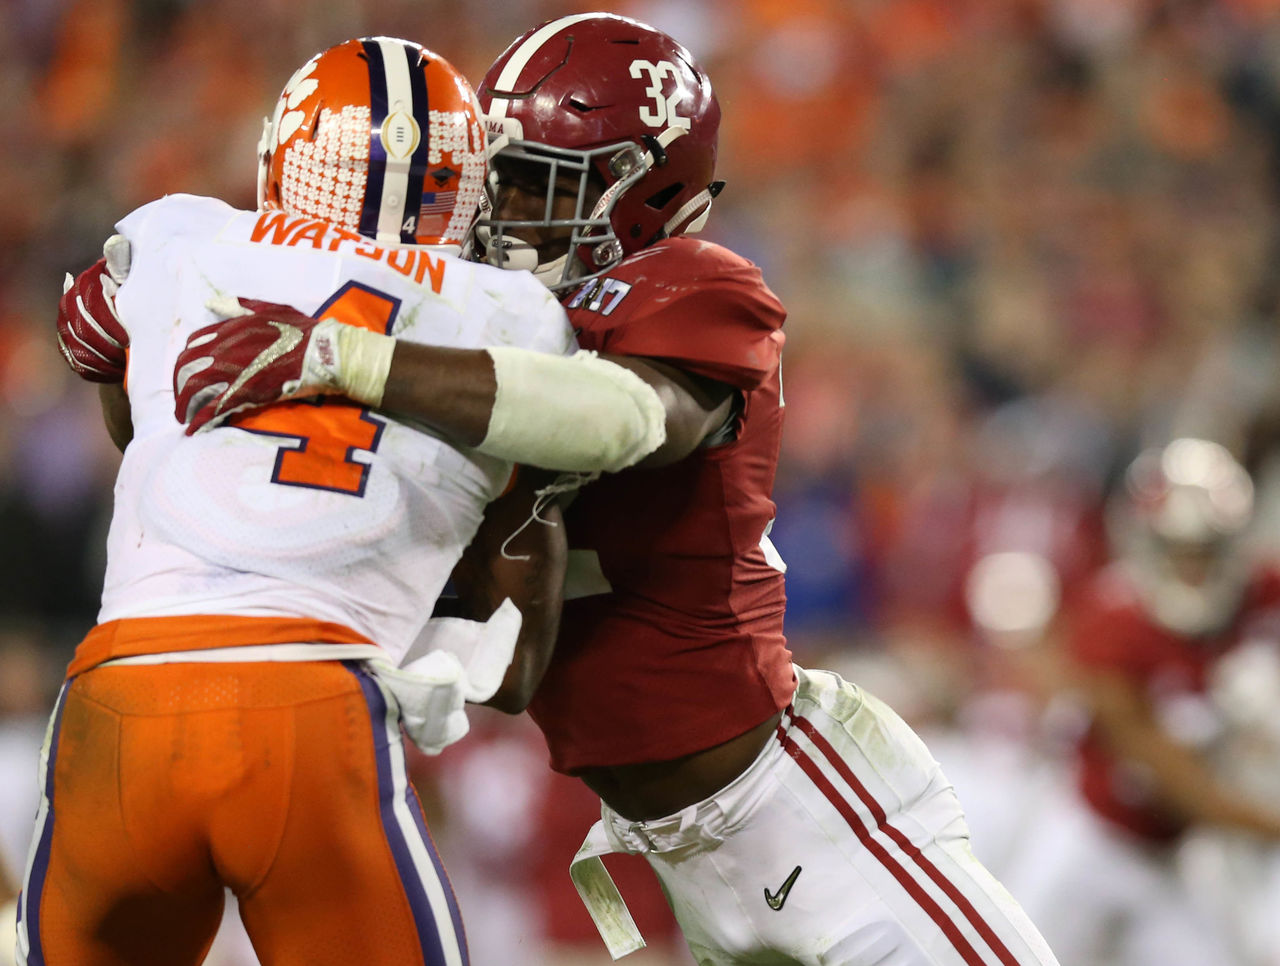 Cropped 2017 01 10t044920z 1079545575 nocid rtrmadp 3 ncaa football cfp national championship clemson vs alabama